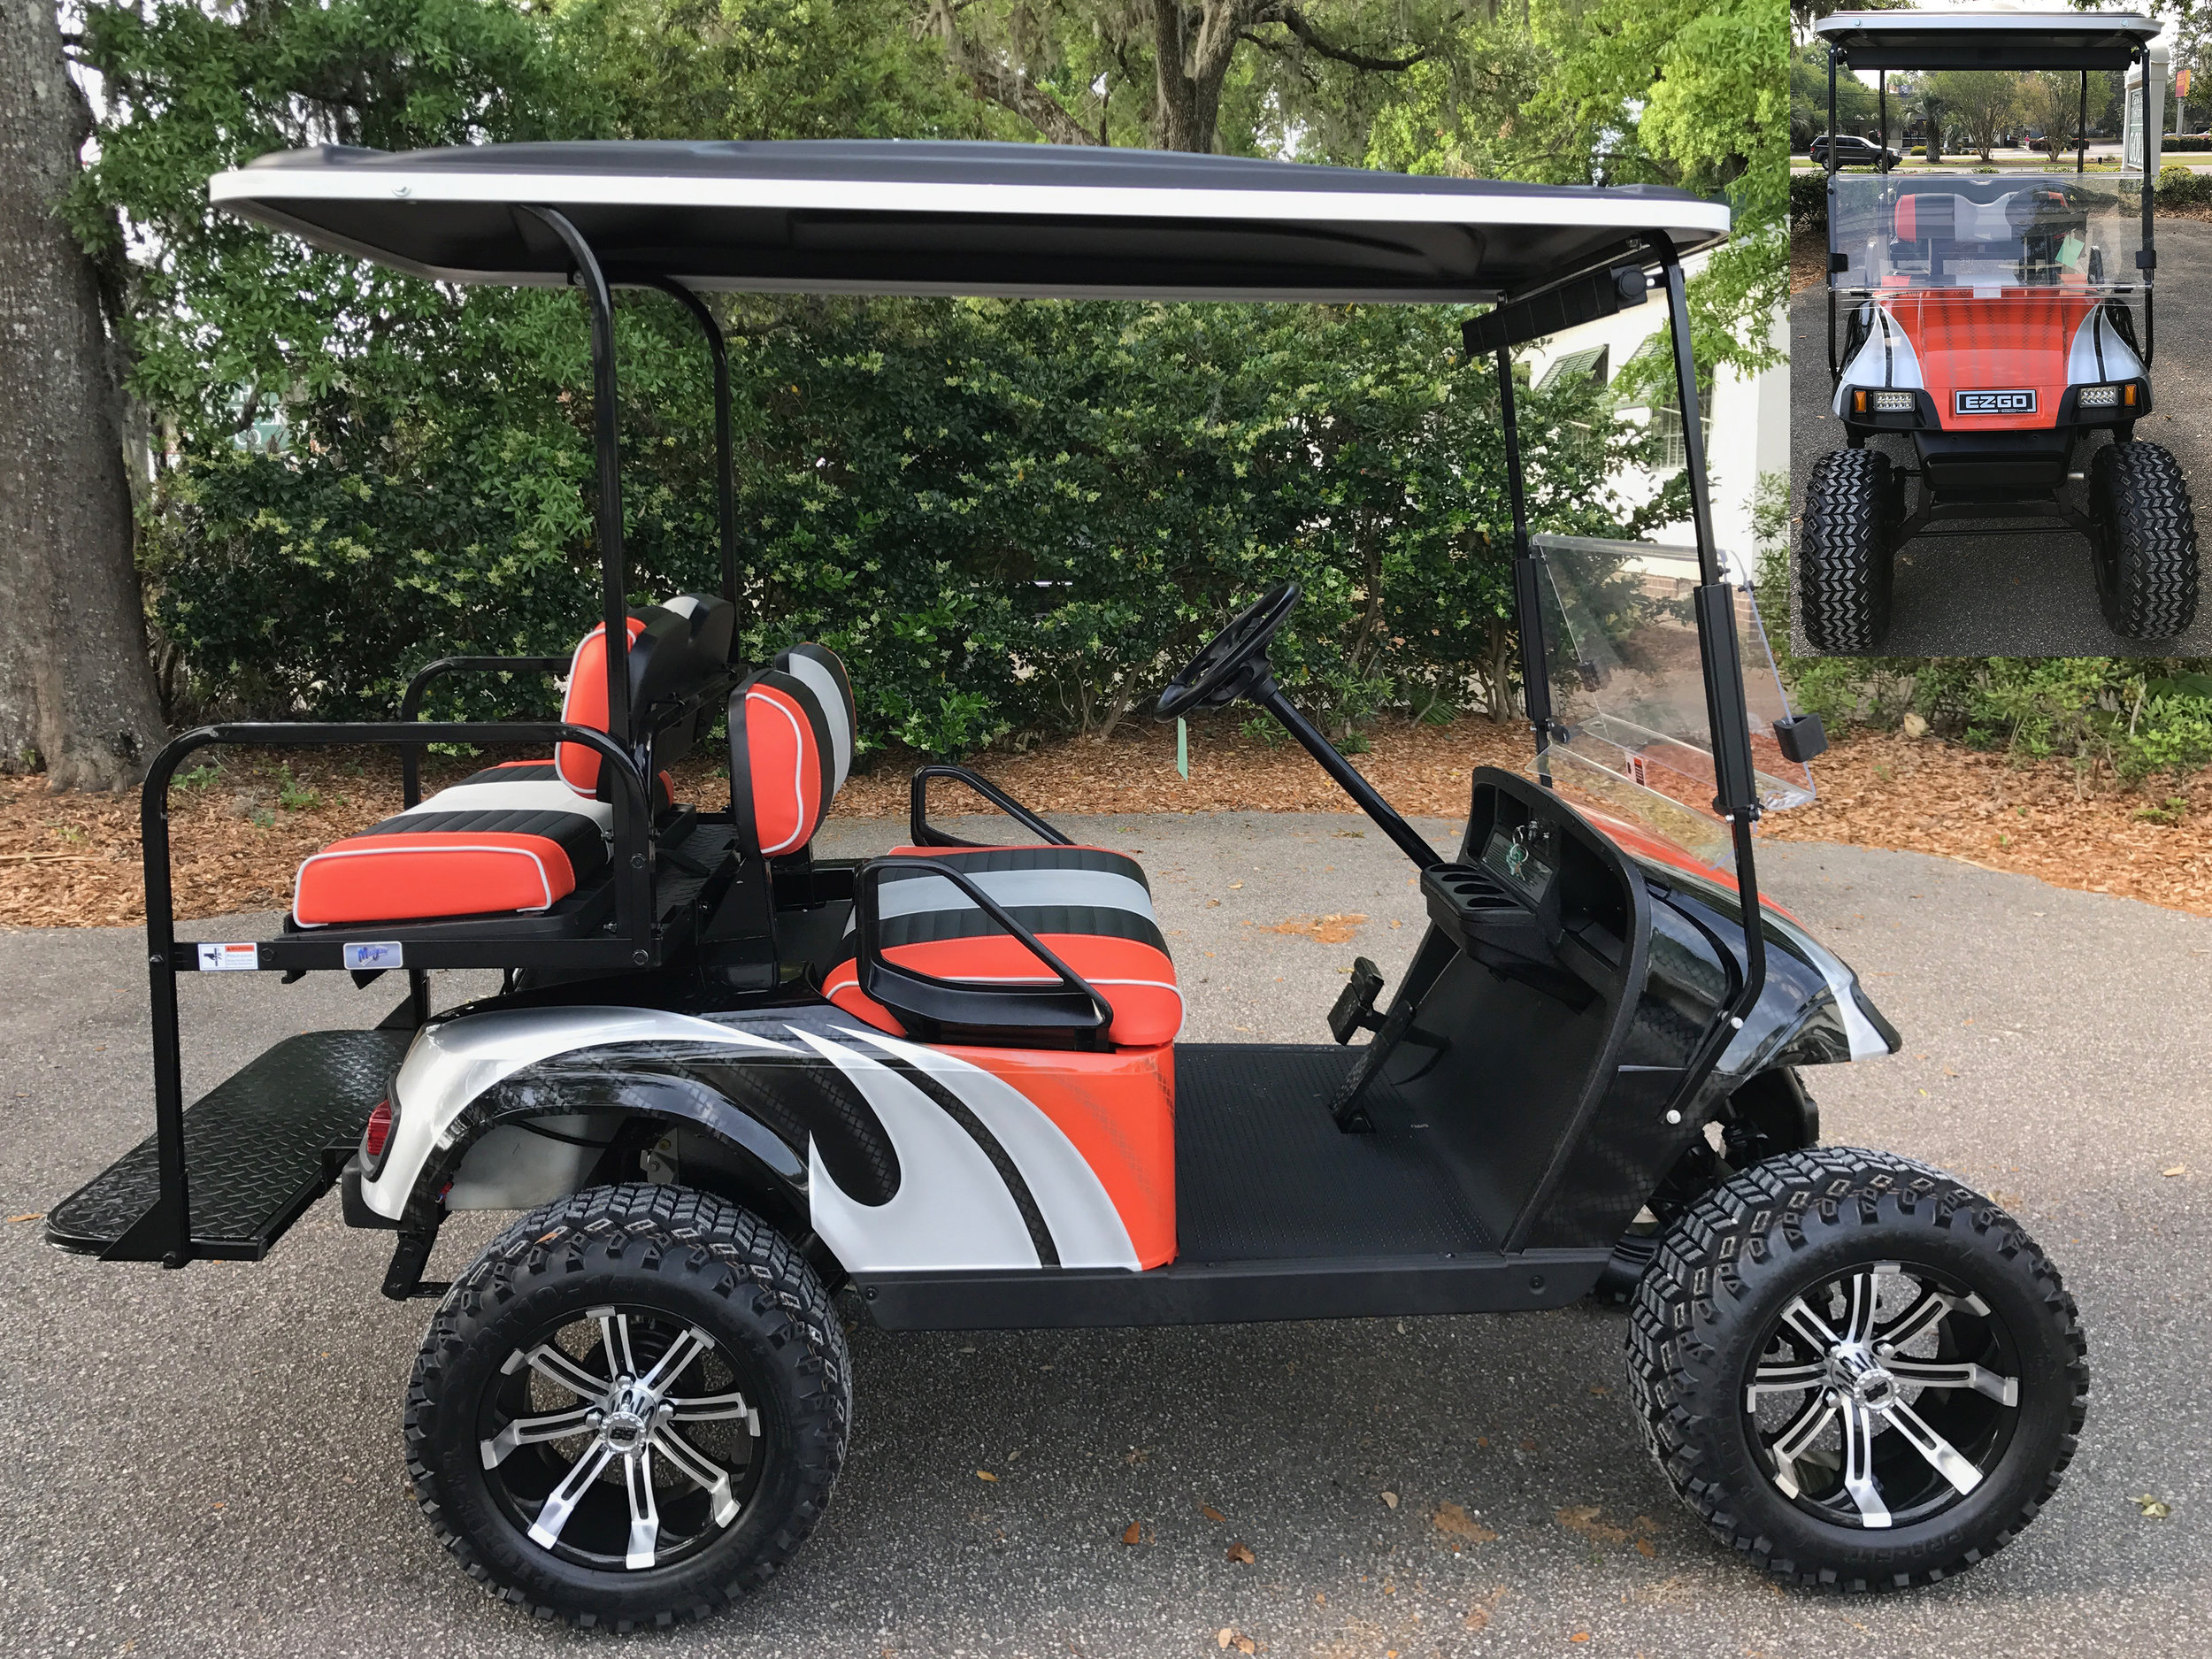 Orange Swirl EZGO Lifted Cart  Orange/black/smoke seats, black extended top, new batteries, high speed code, LED lights, Backlash (23x10x14) tires, mirror, flip windshield, and state of charge meter